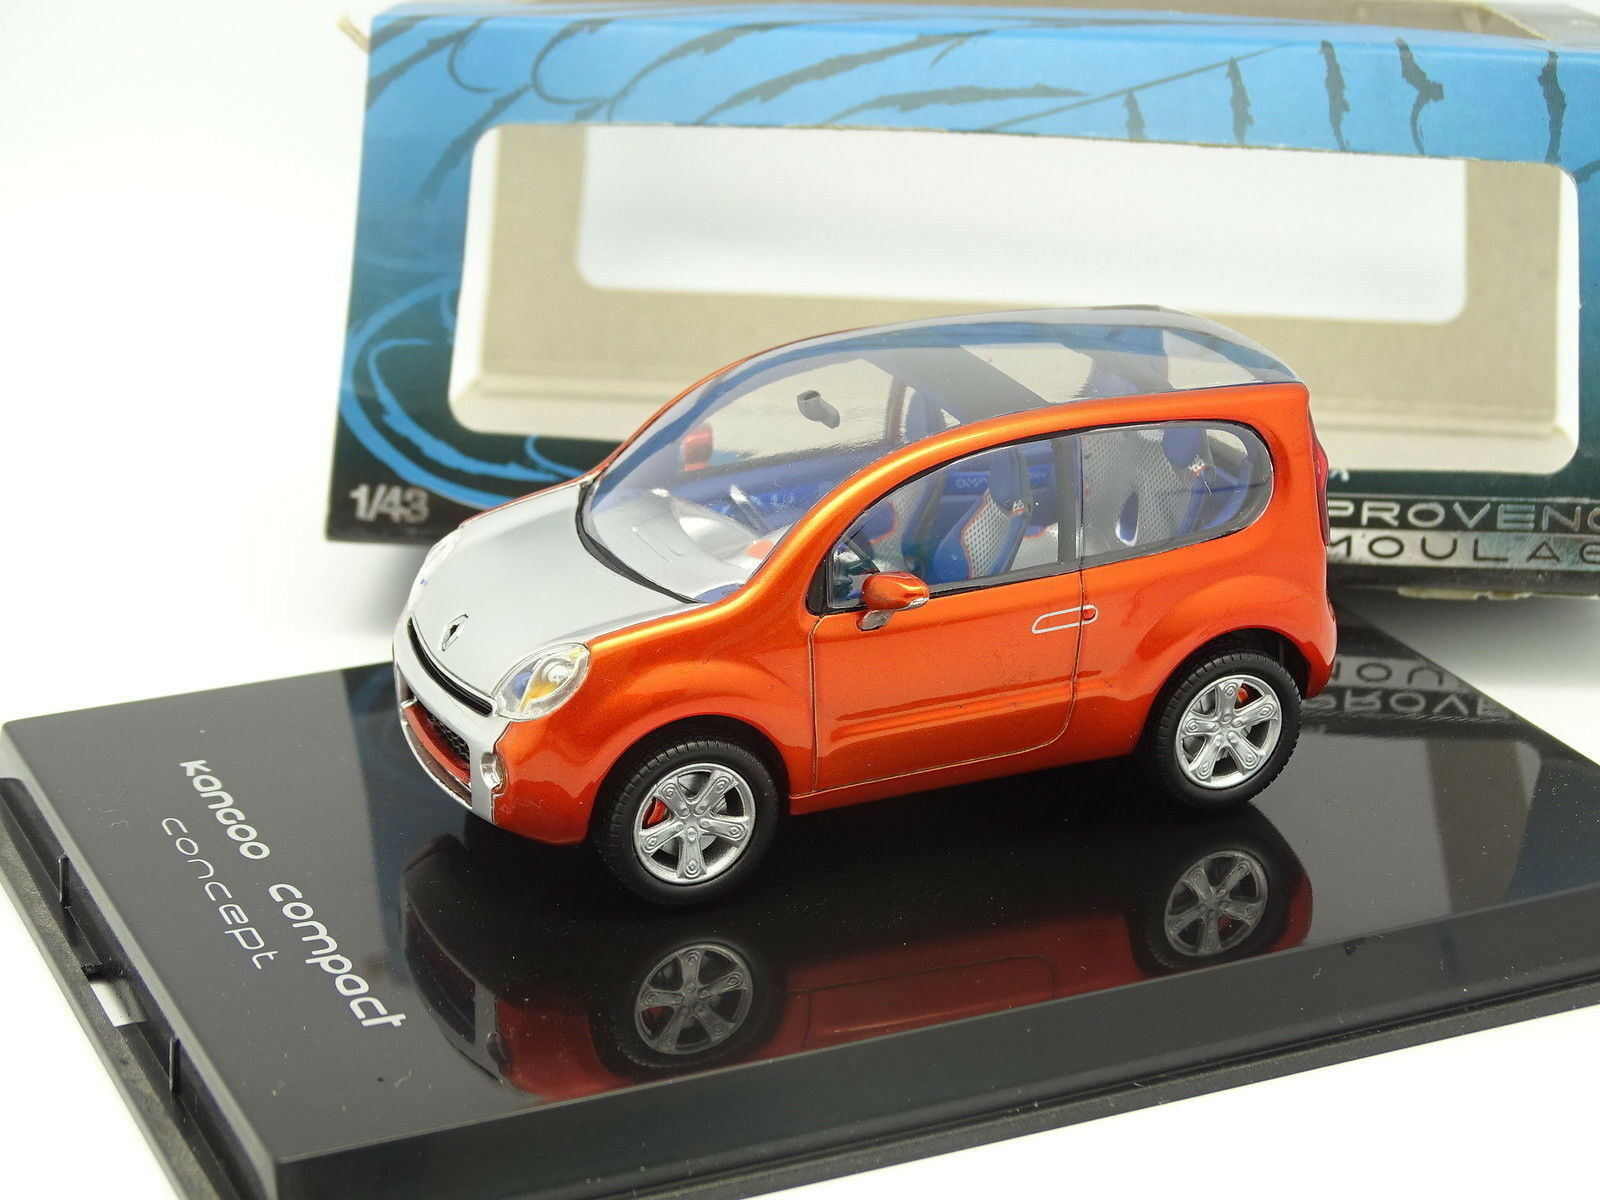 Provence Moulage Norev Harz 1 43 - Renault Kangoo Compact Concept